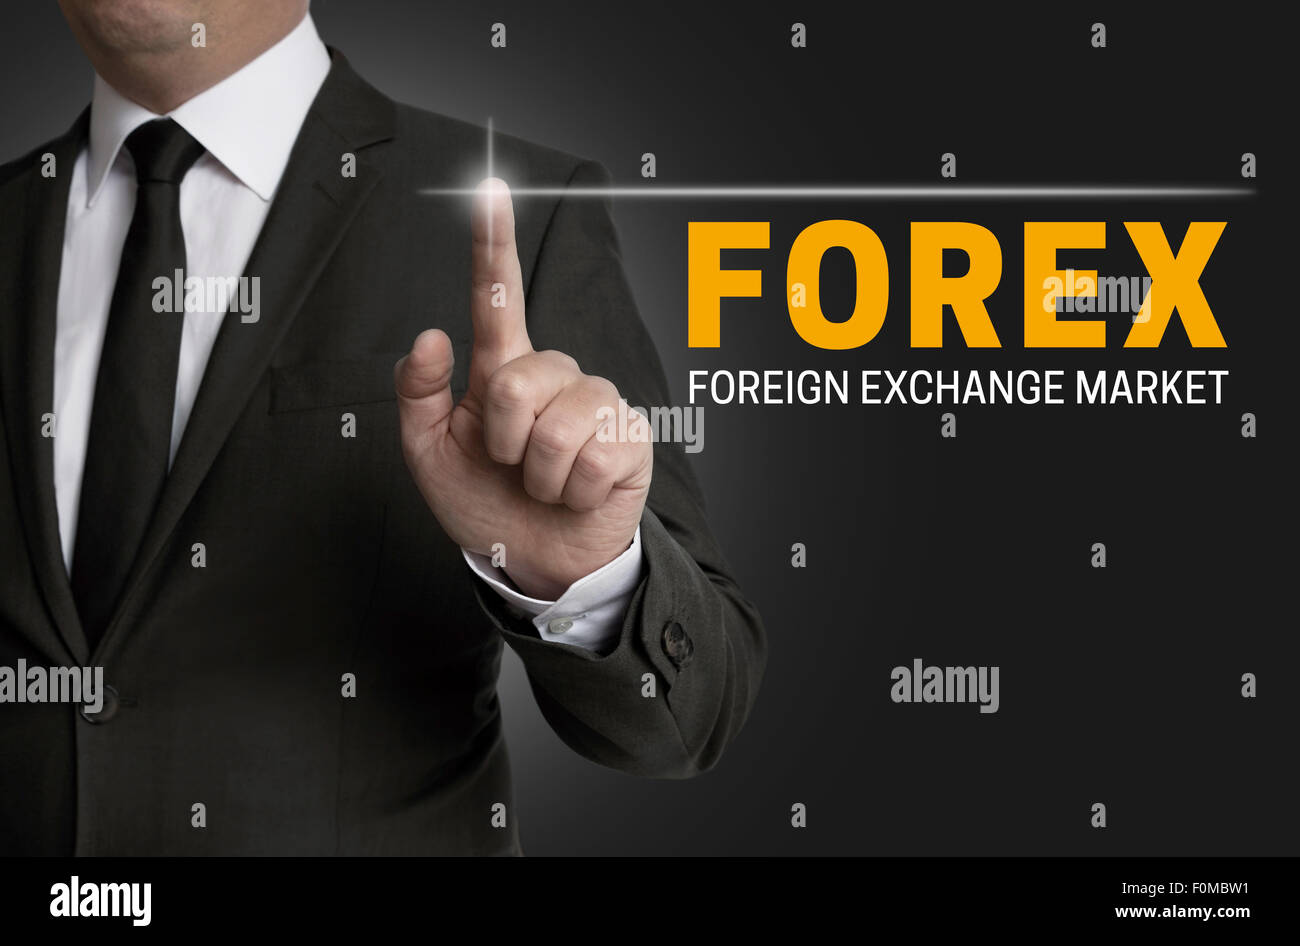 Forex touchscreen is operated by businessman. - Stock Image